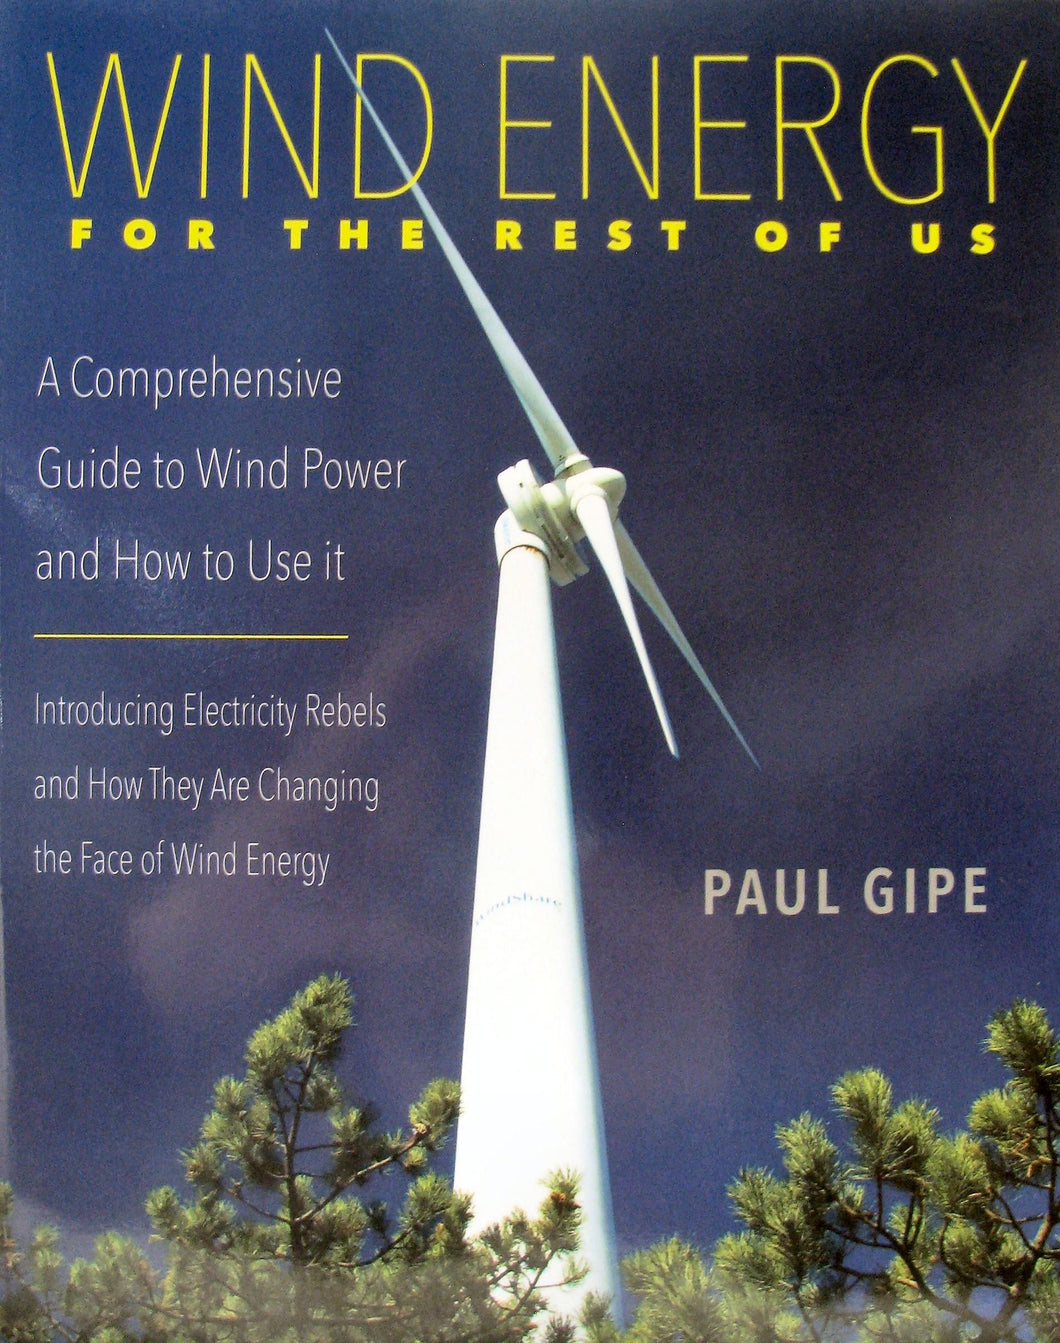 Wind Energy for the Rest of Us